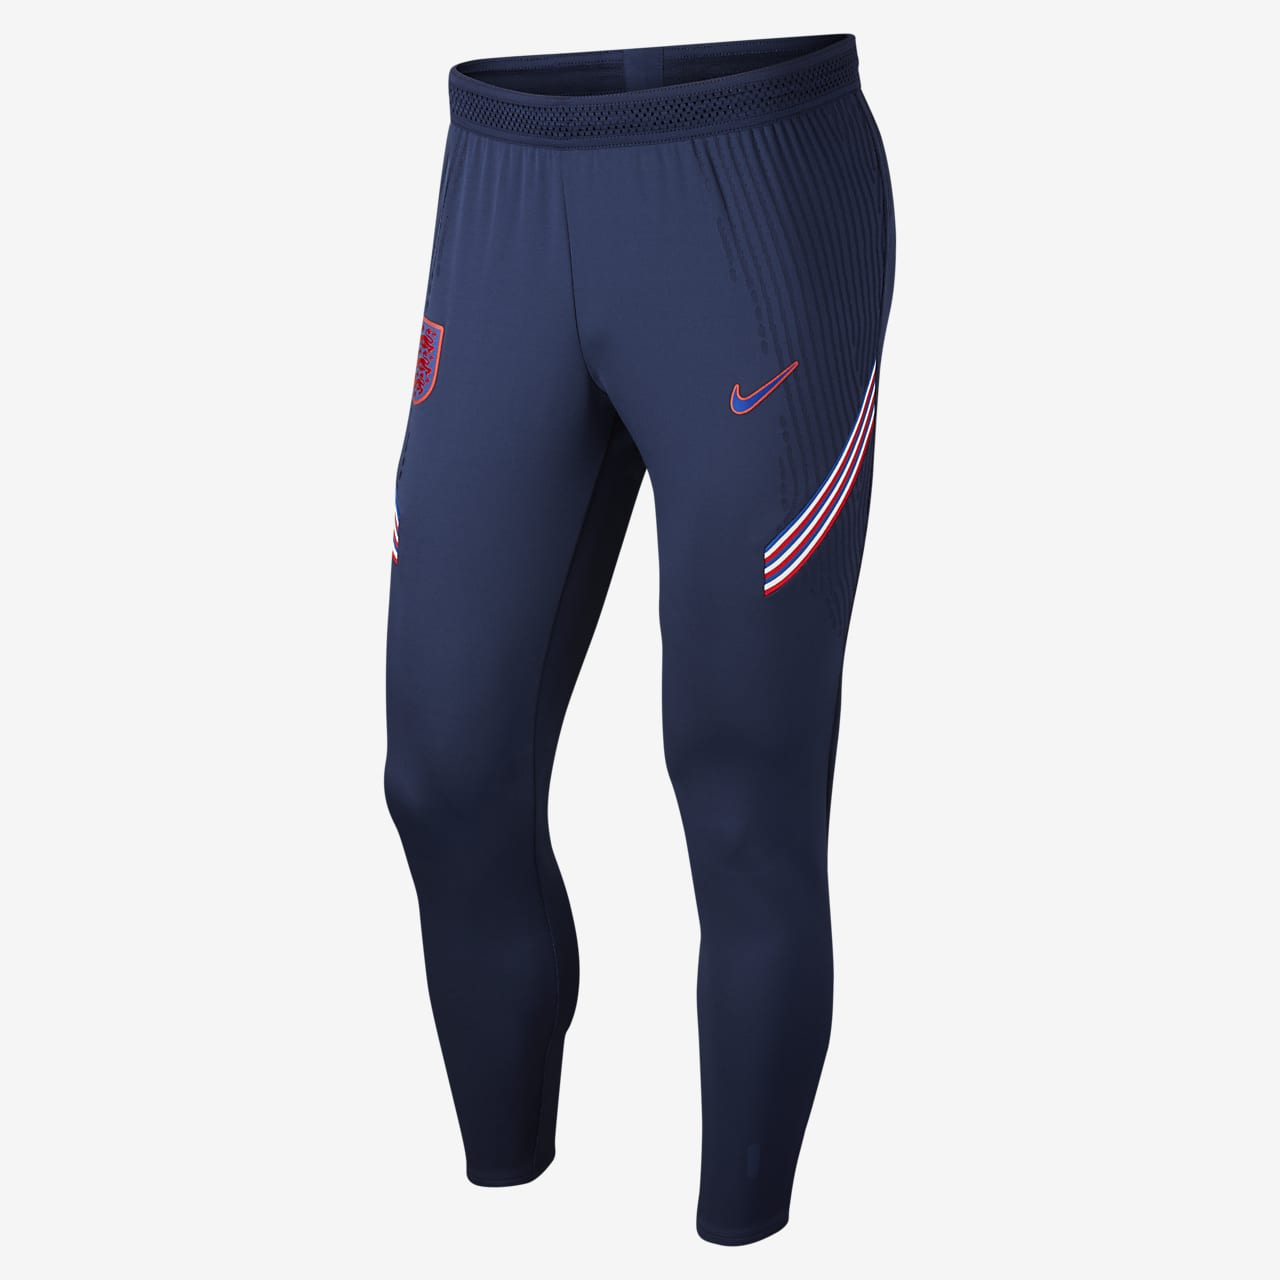 England VaporKnit Strike Men's Football Pants